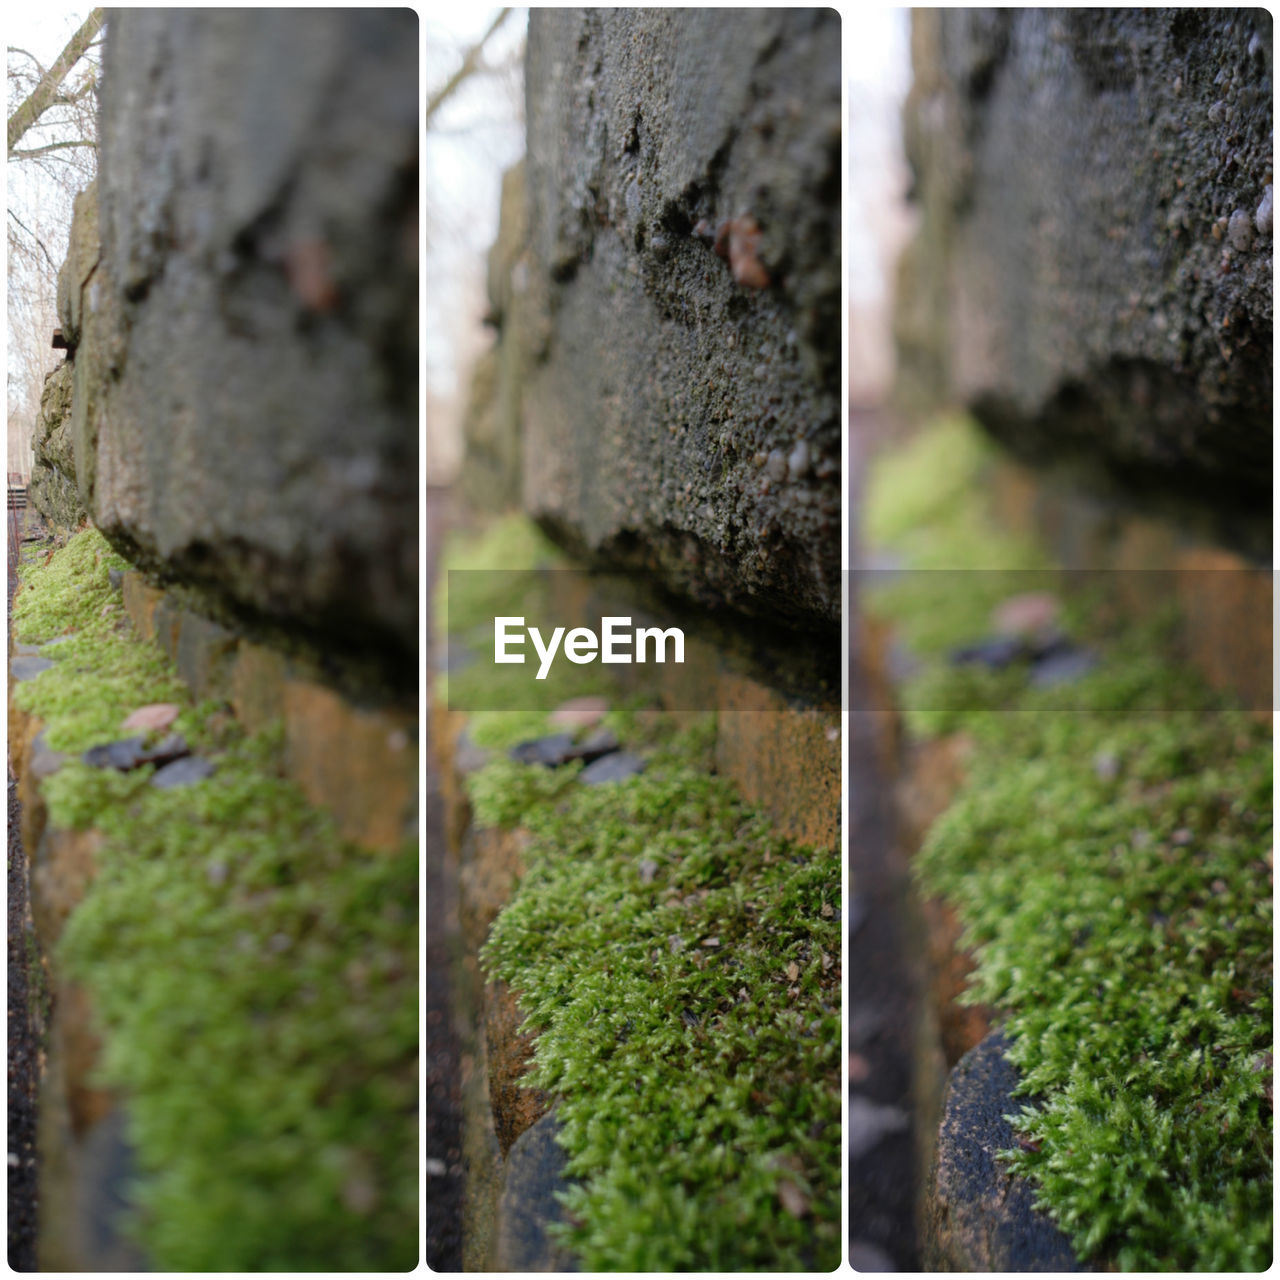 no people, day, outdoors, moss, growth, nature, plant, collage, close-up, water, tree, beauty in nature